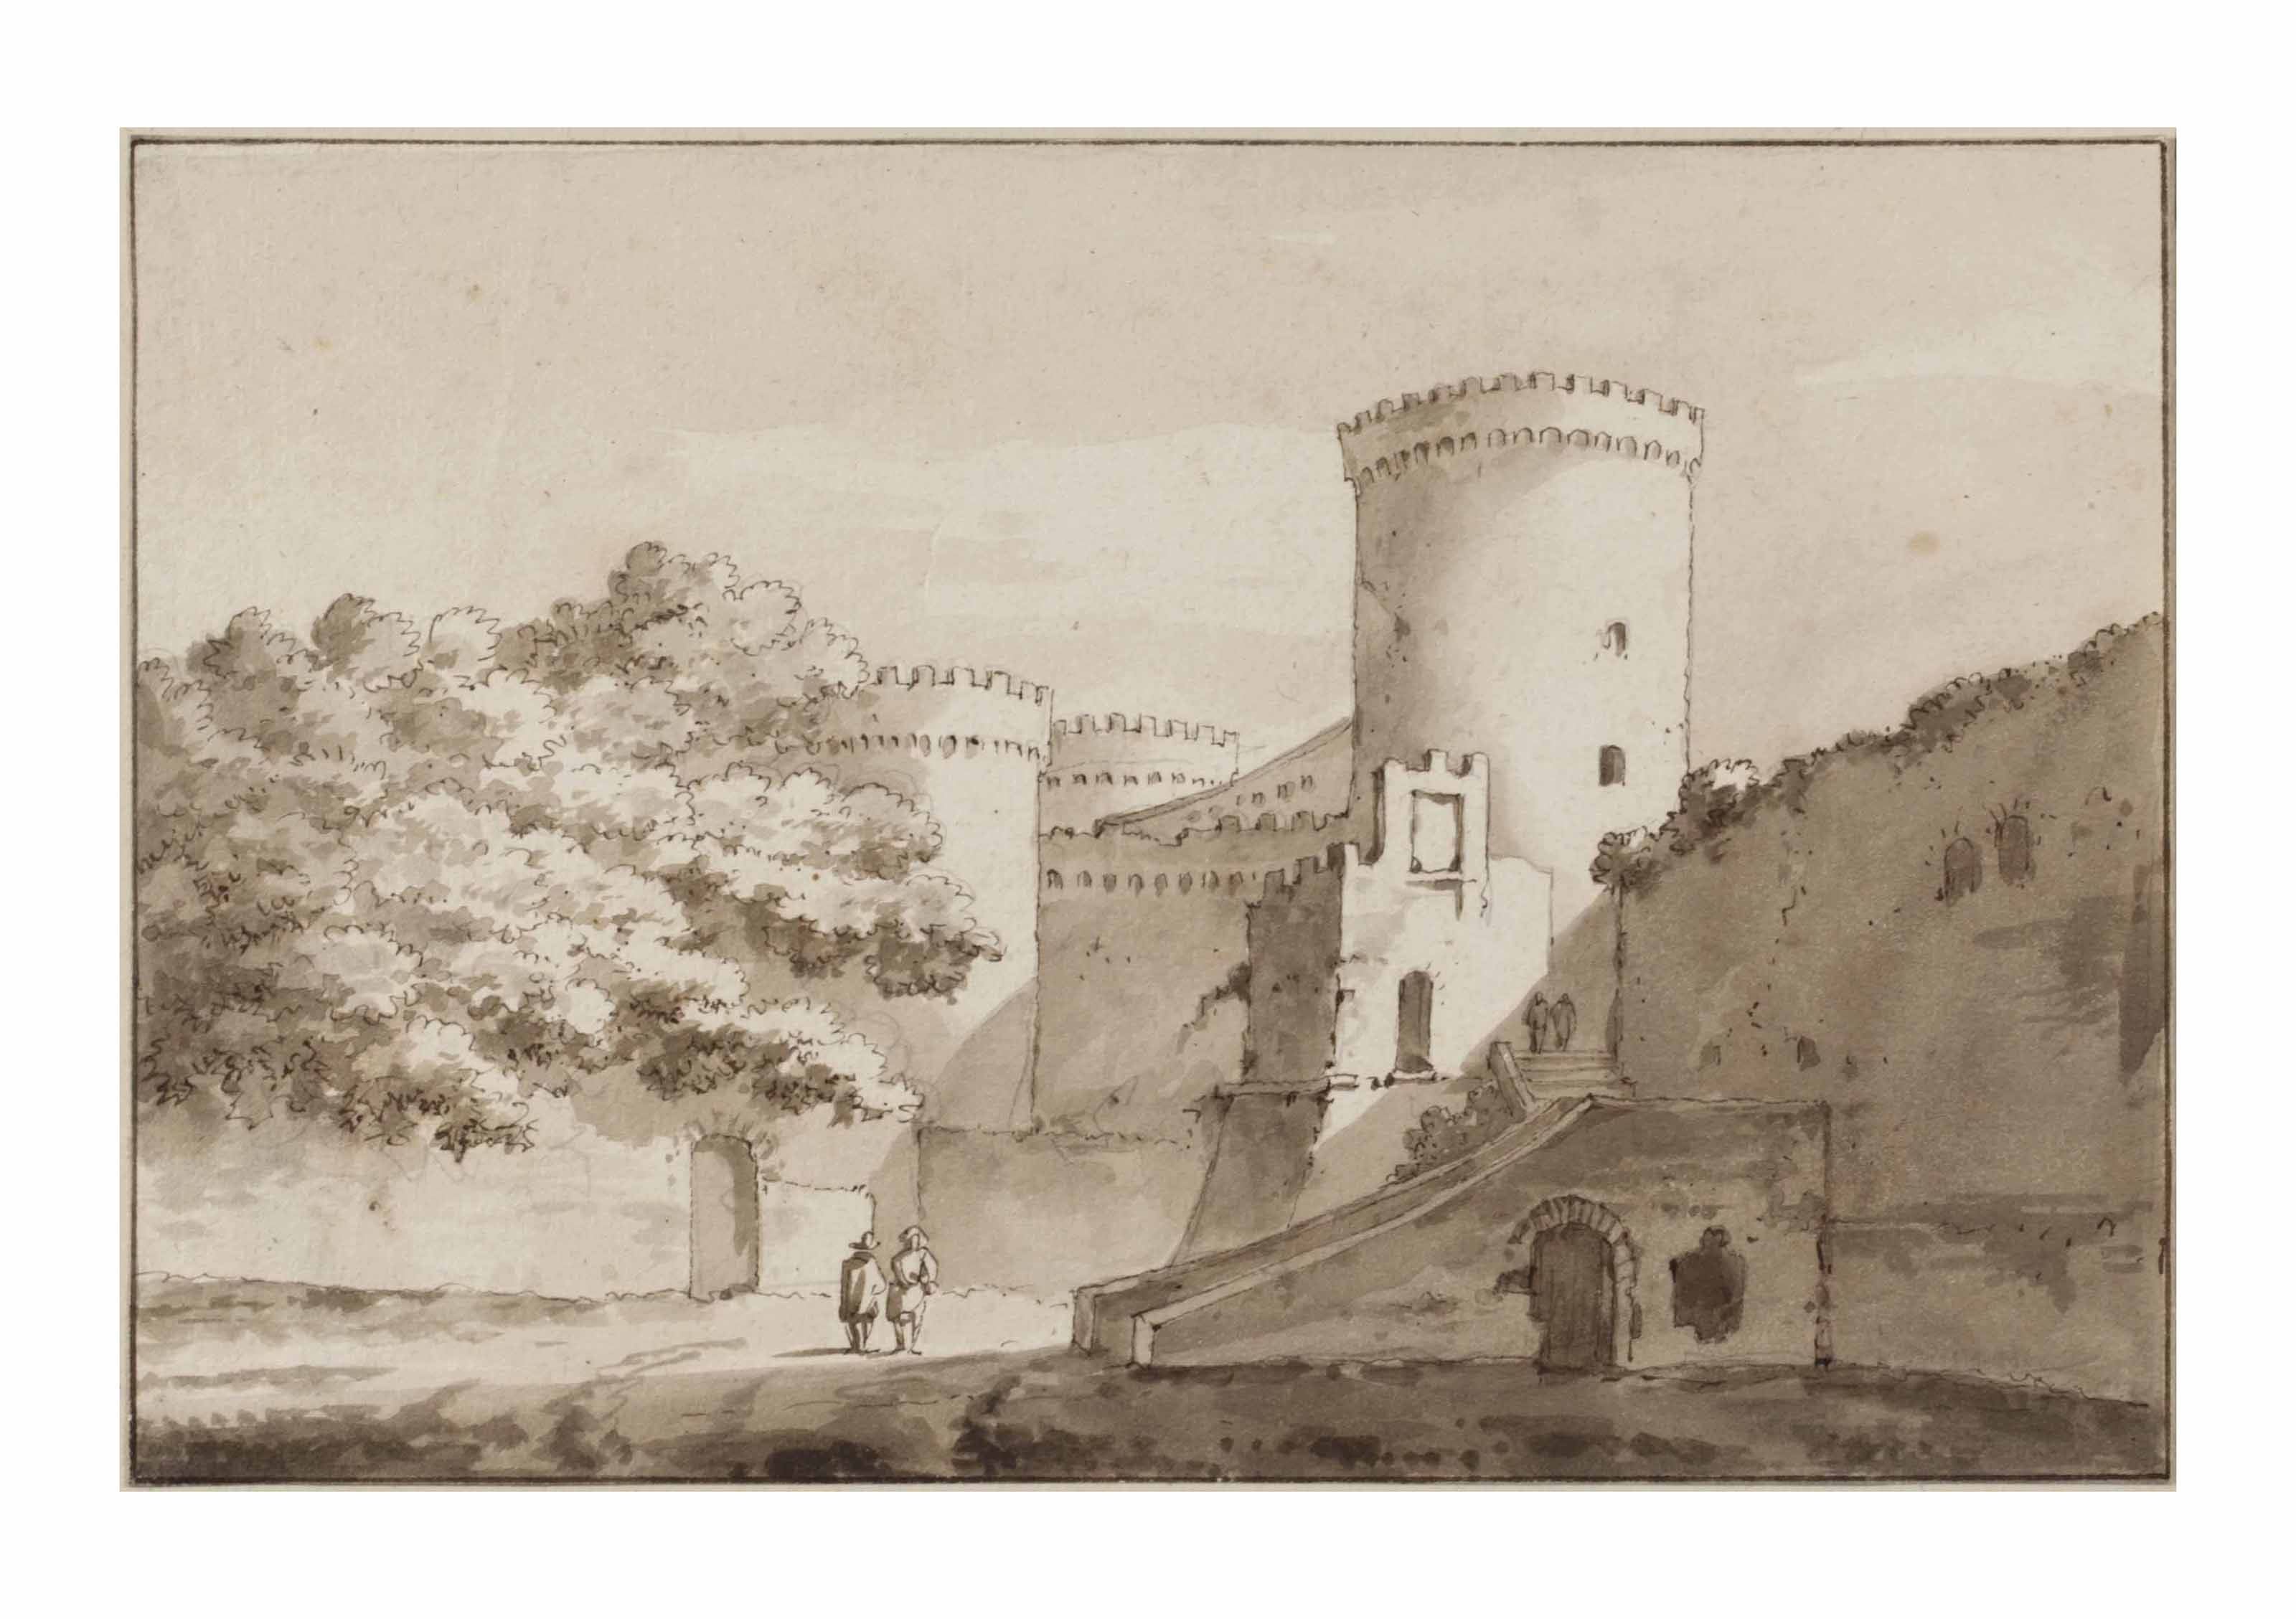 View of a castle, probably Castel Gandolfo